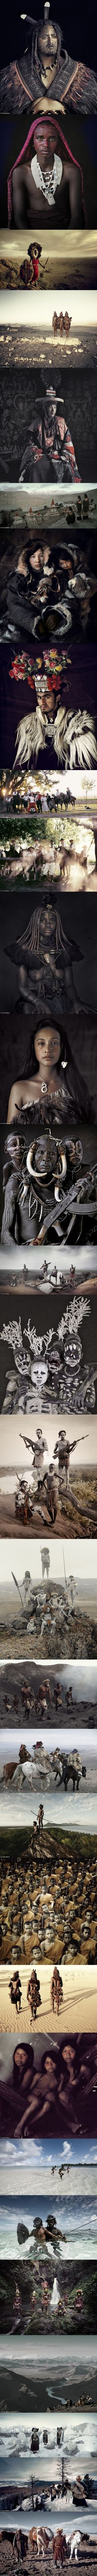 Dying life of the tribe. Photographer travelled the world for 3 years, visiting 35 tribes in all 5 continents.